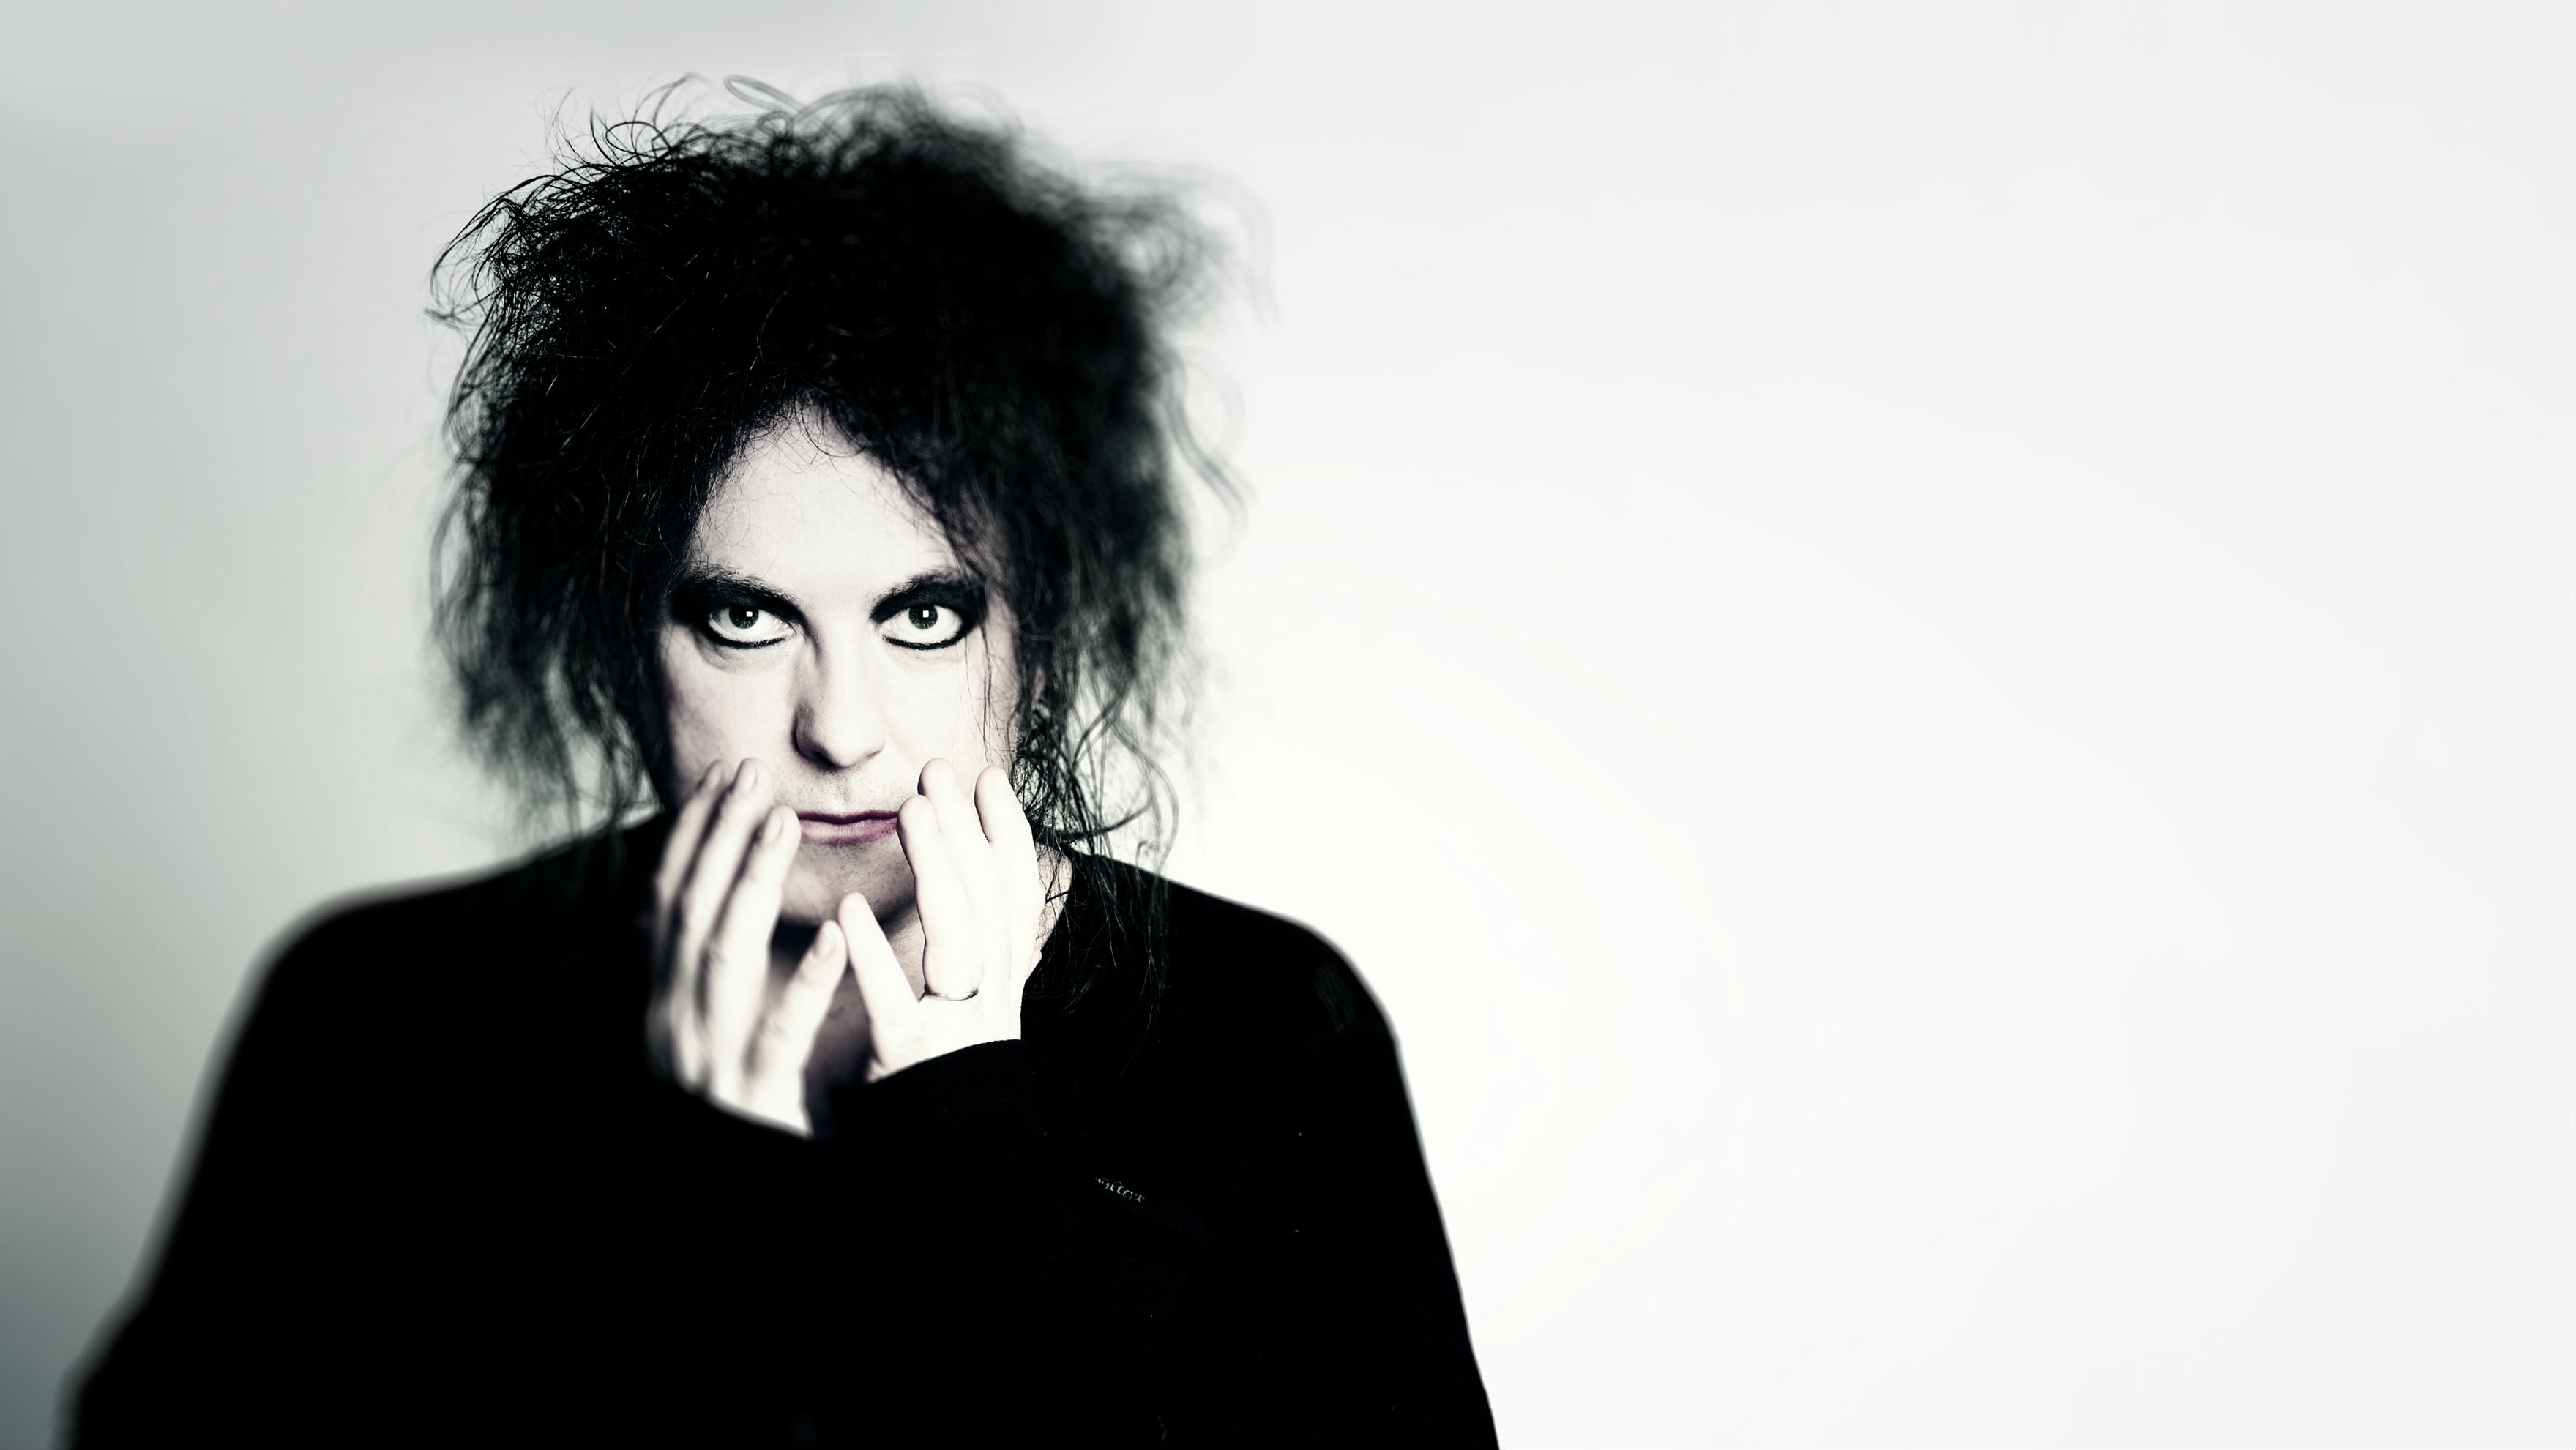 Portrait of The Cure's Robert Smith, who is curating Meltdown at Southbank Centre.